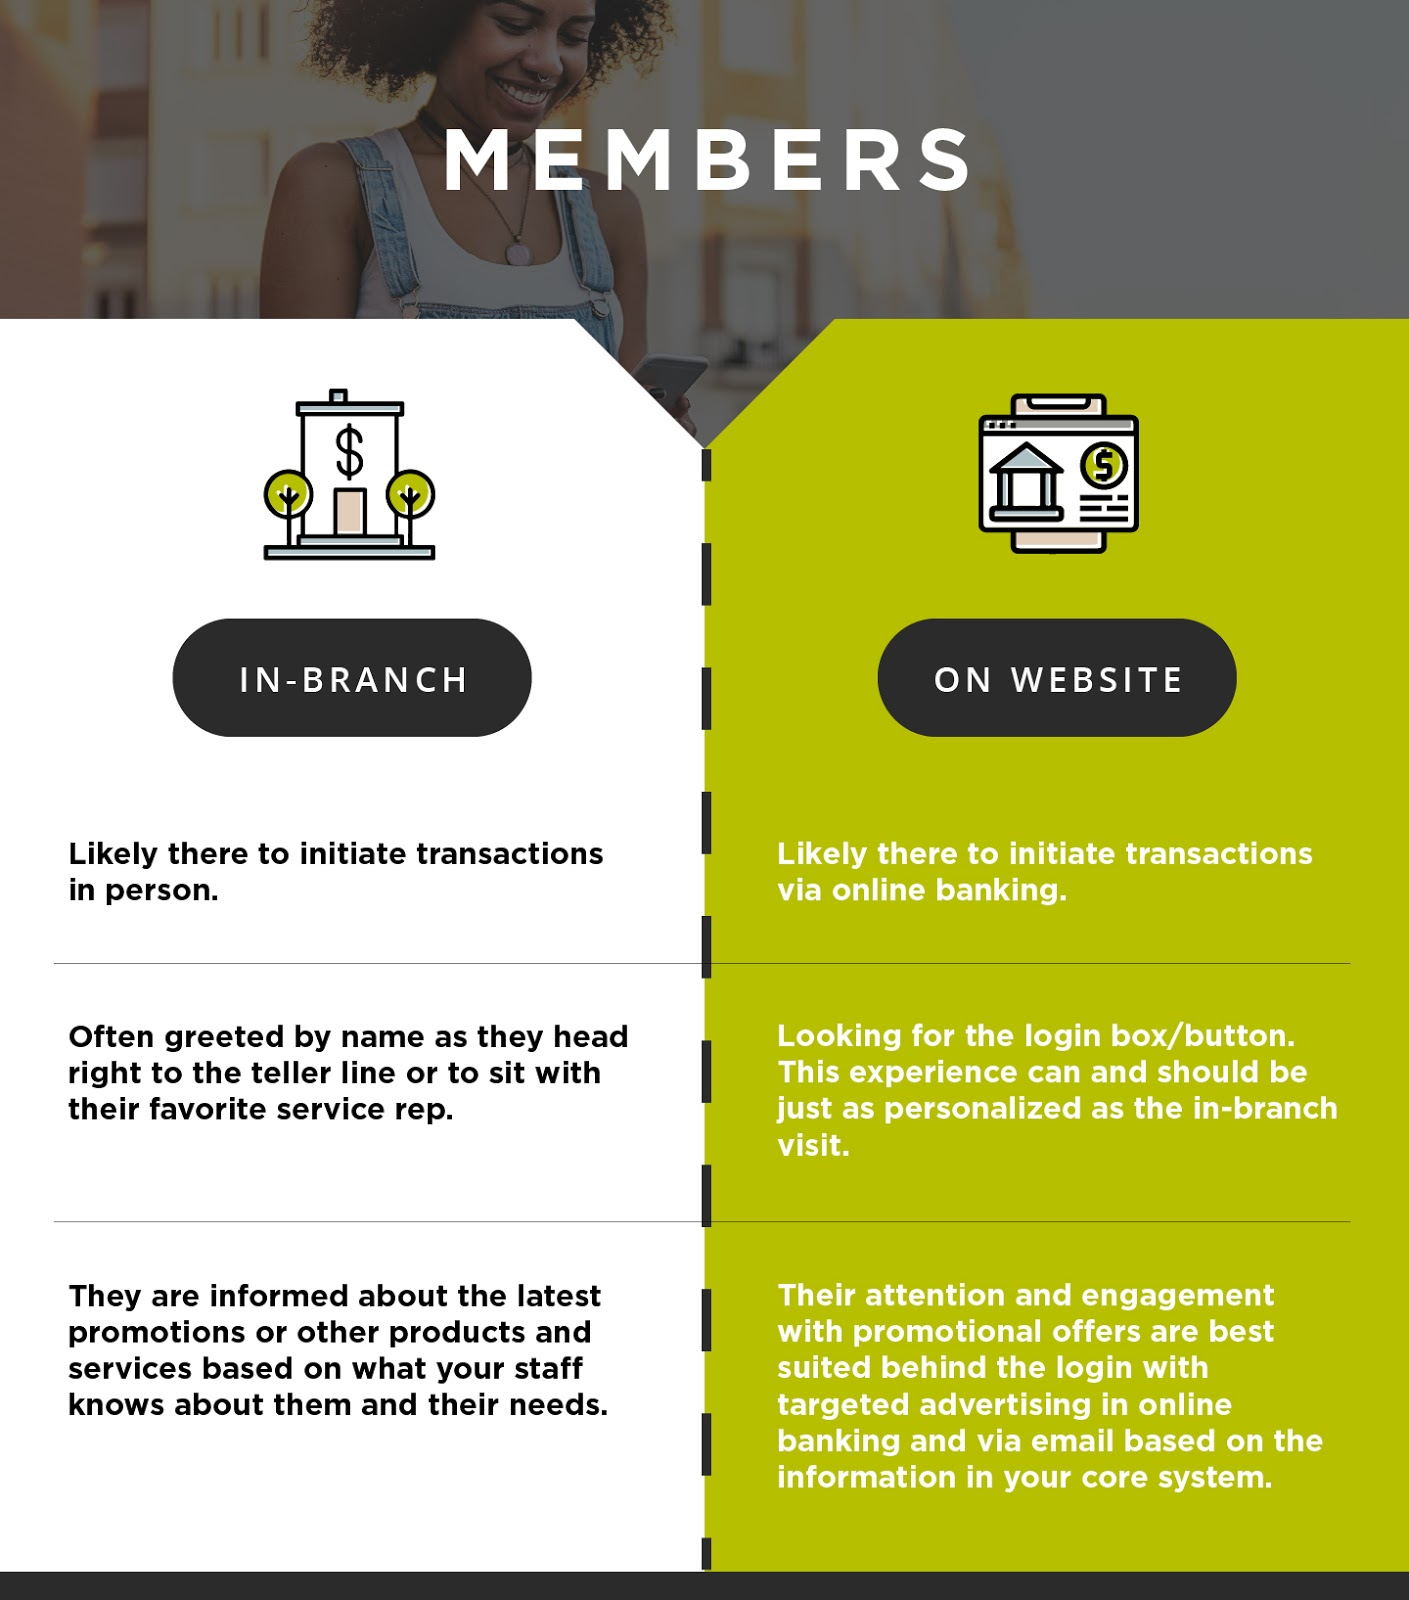 How members use your branch vs your website.